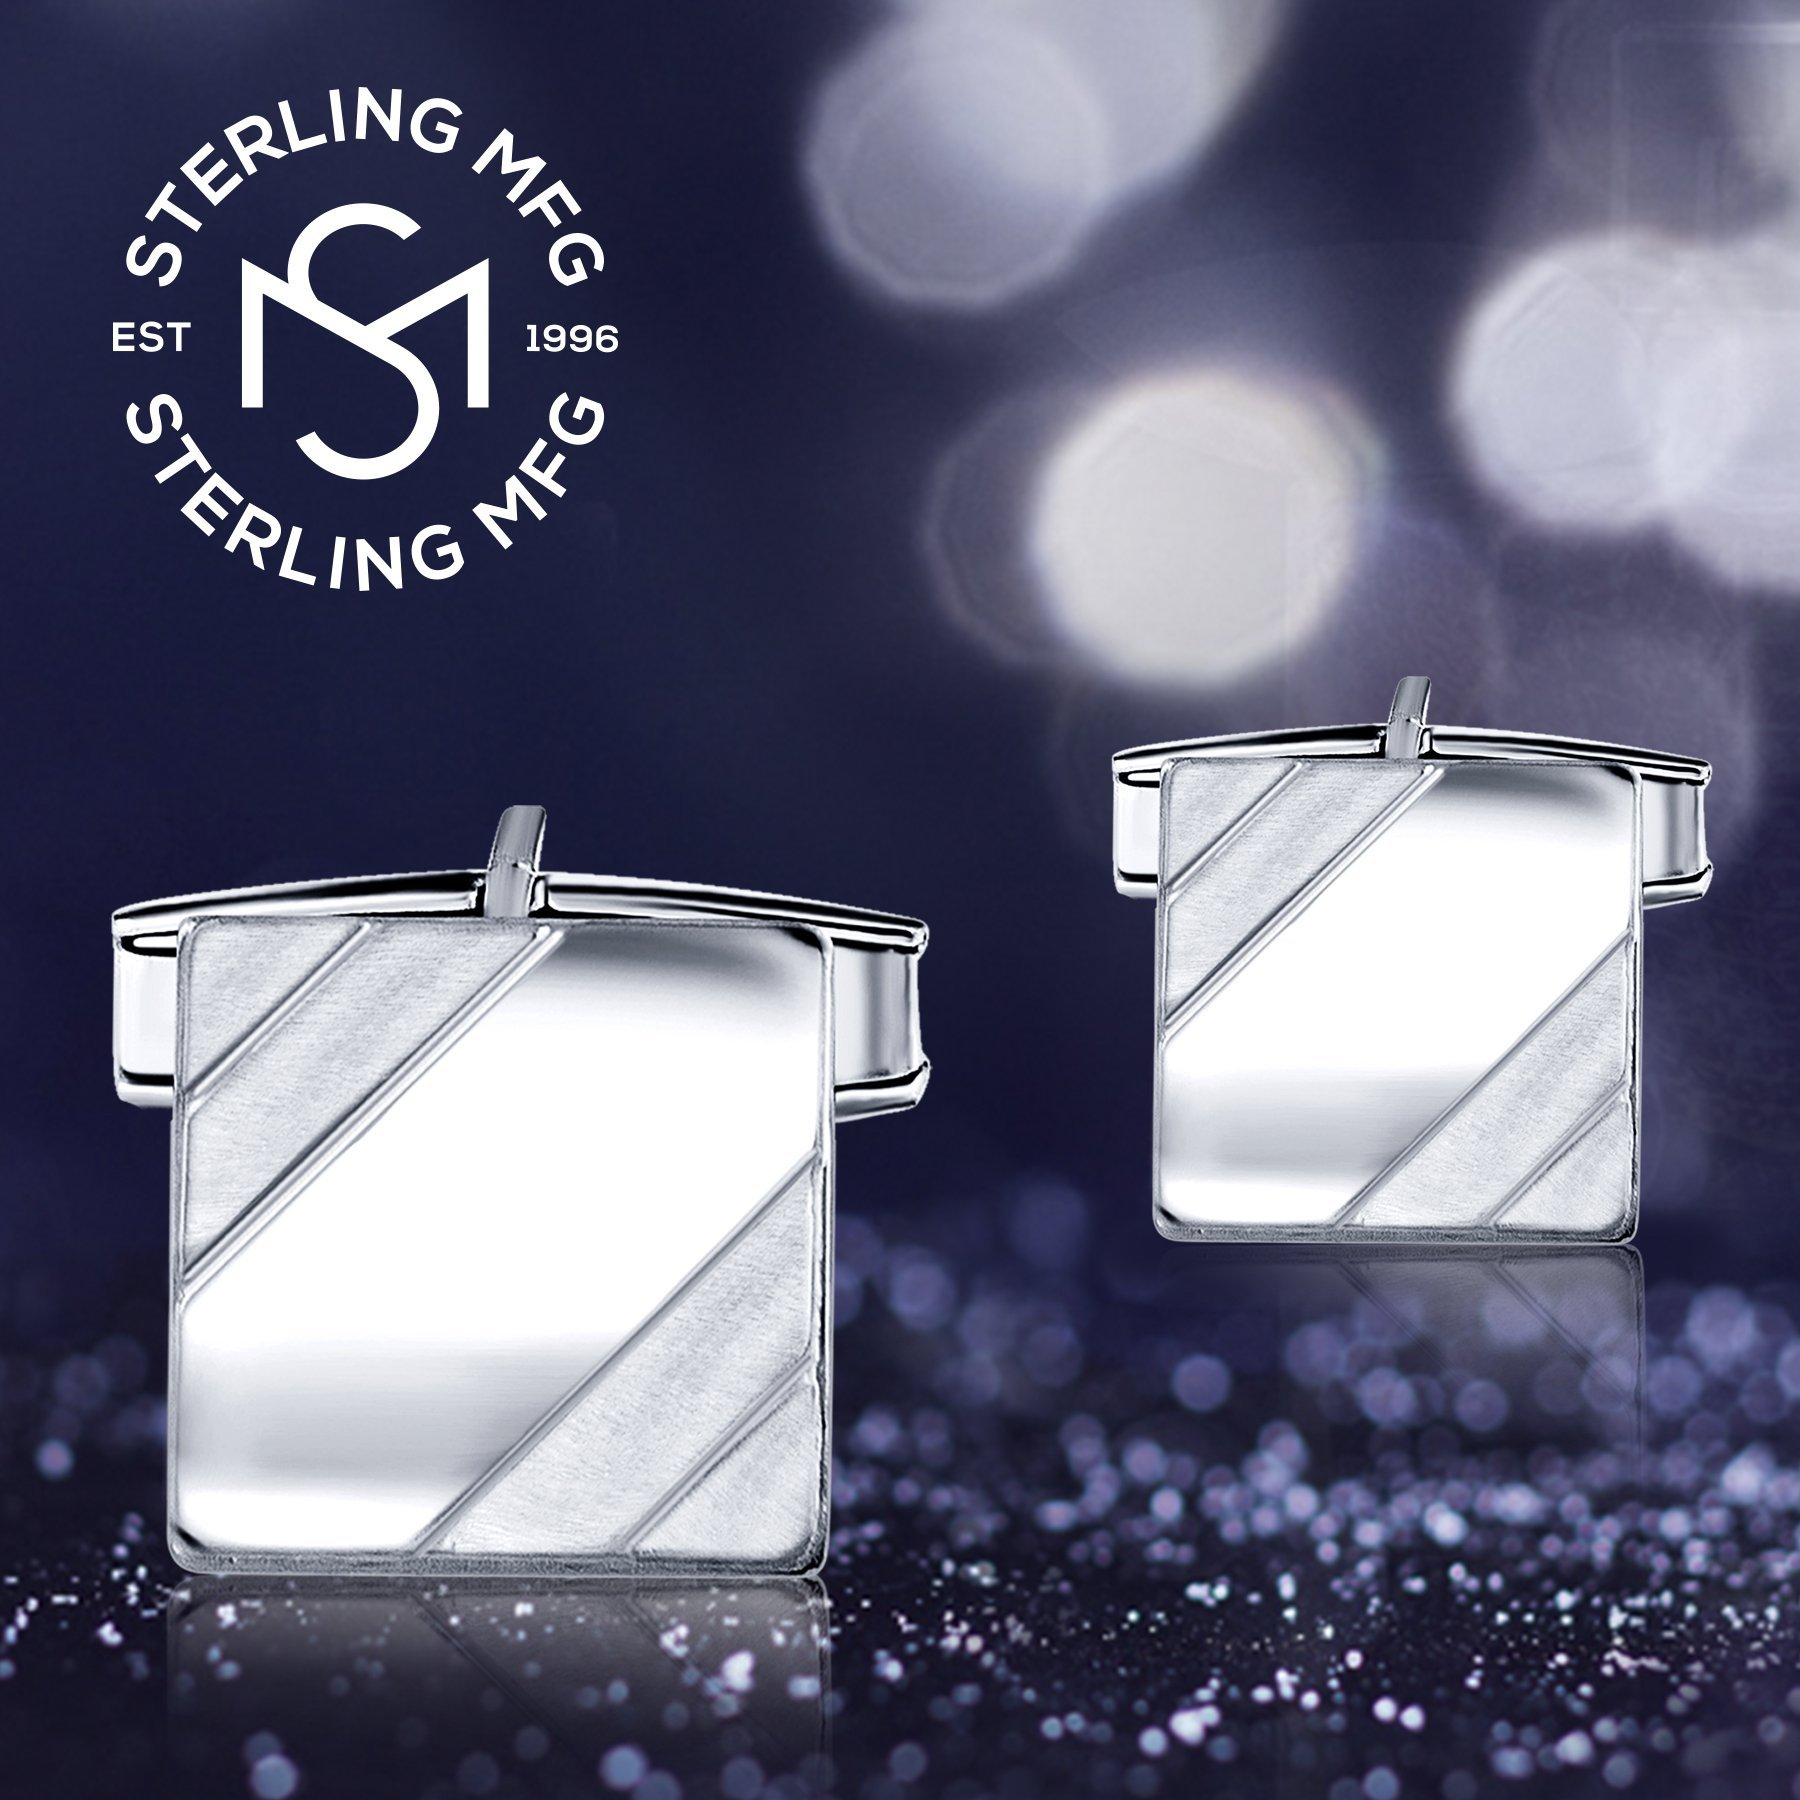 Men's Sterling Silver .925 Square Cufflinks with Satin Finish Accents in Two Corners, Engravable. Made In Italy. 14mm by Sterling Manufacturers (Image #5)